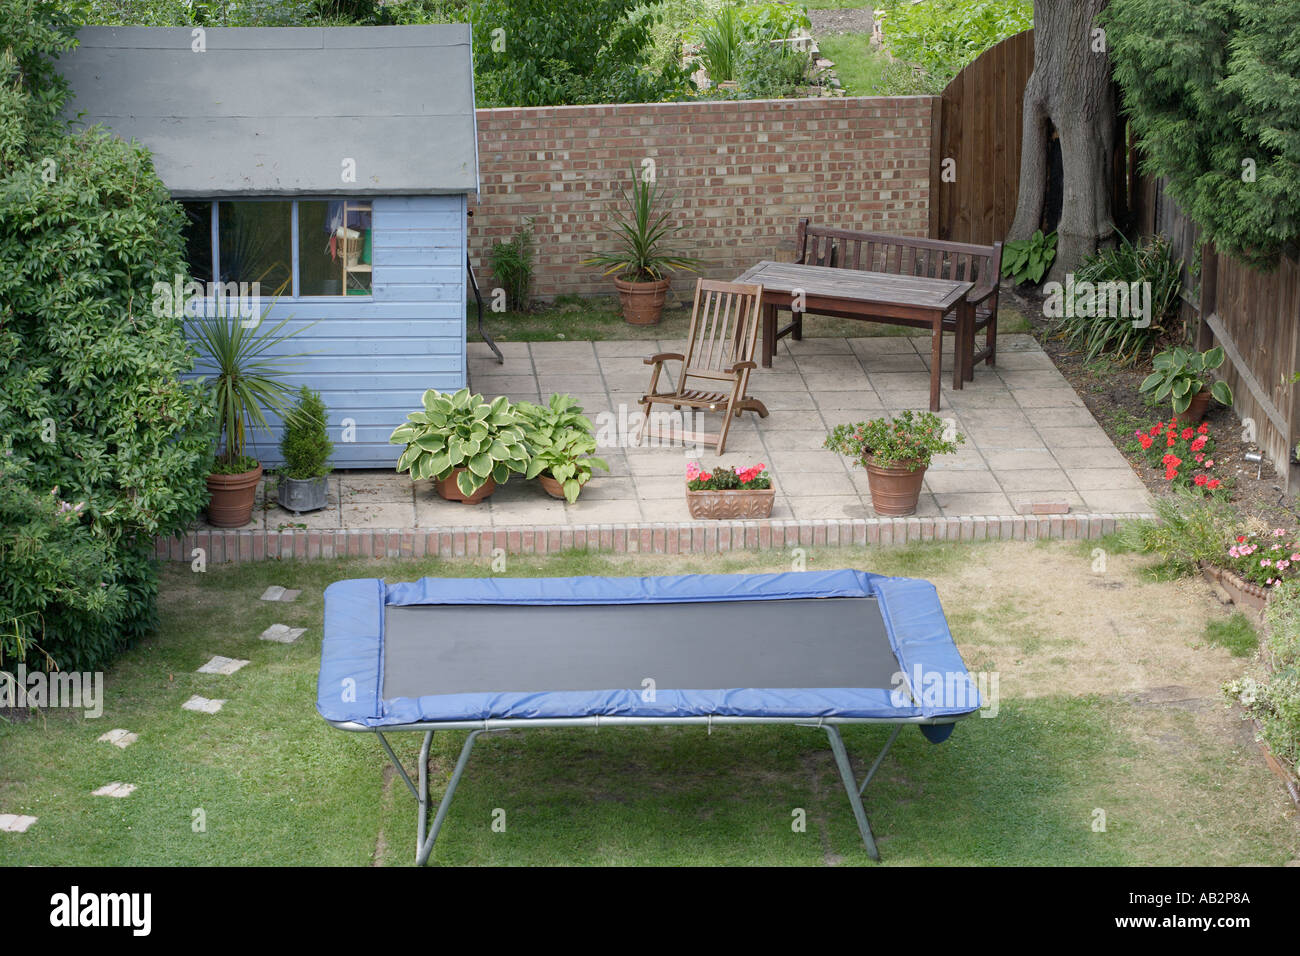 Stock Photo   Suburban Garden With Patio Shed And Trampoline